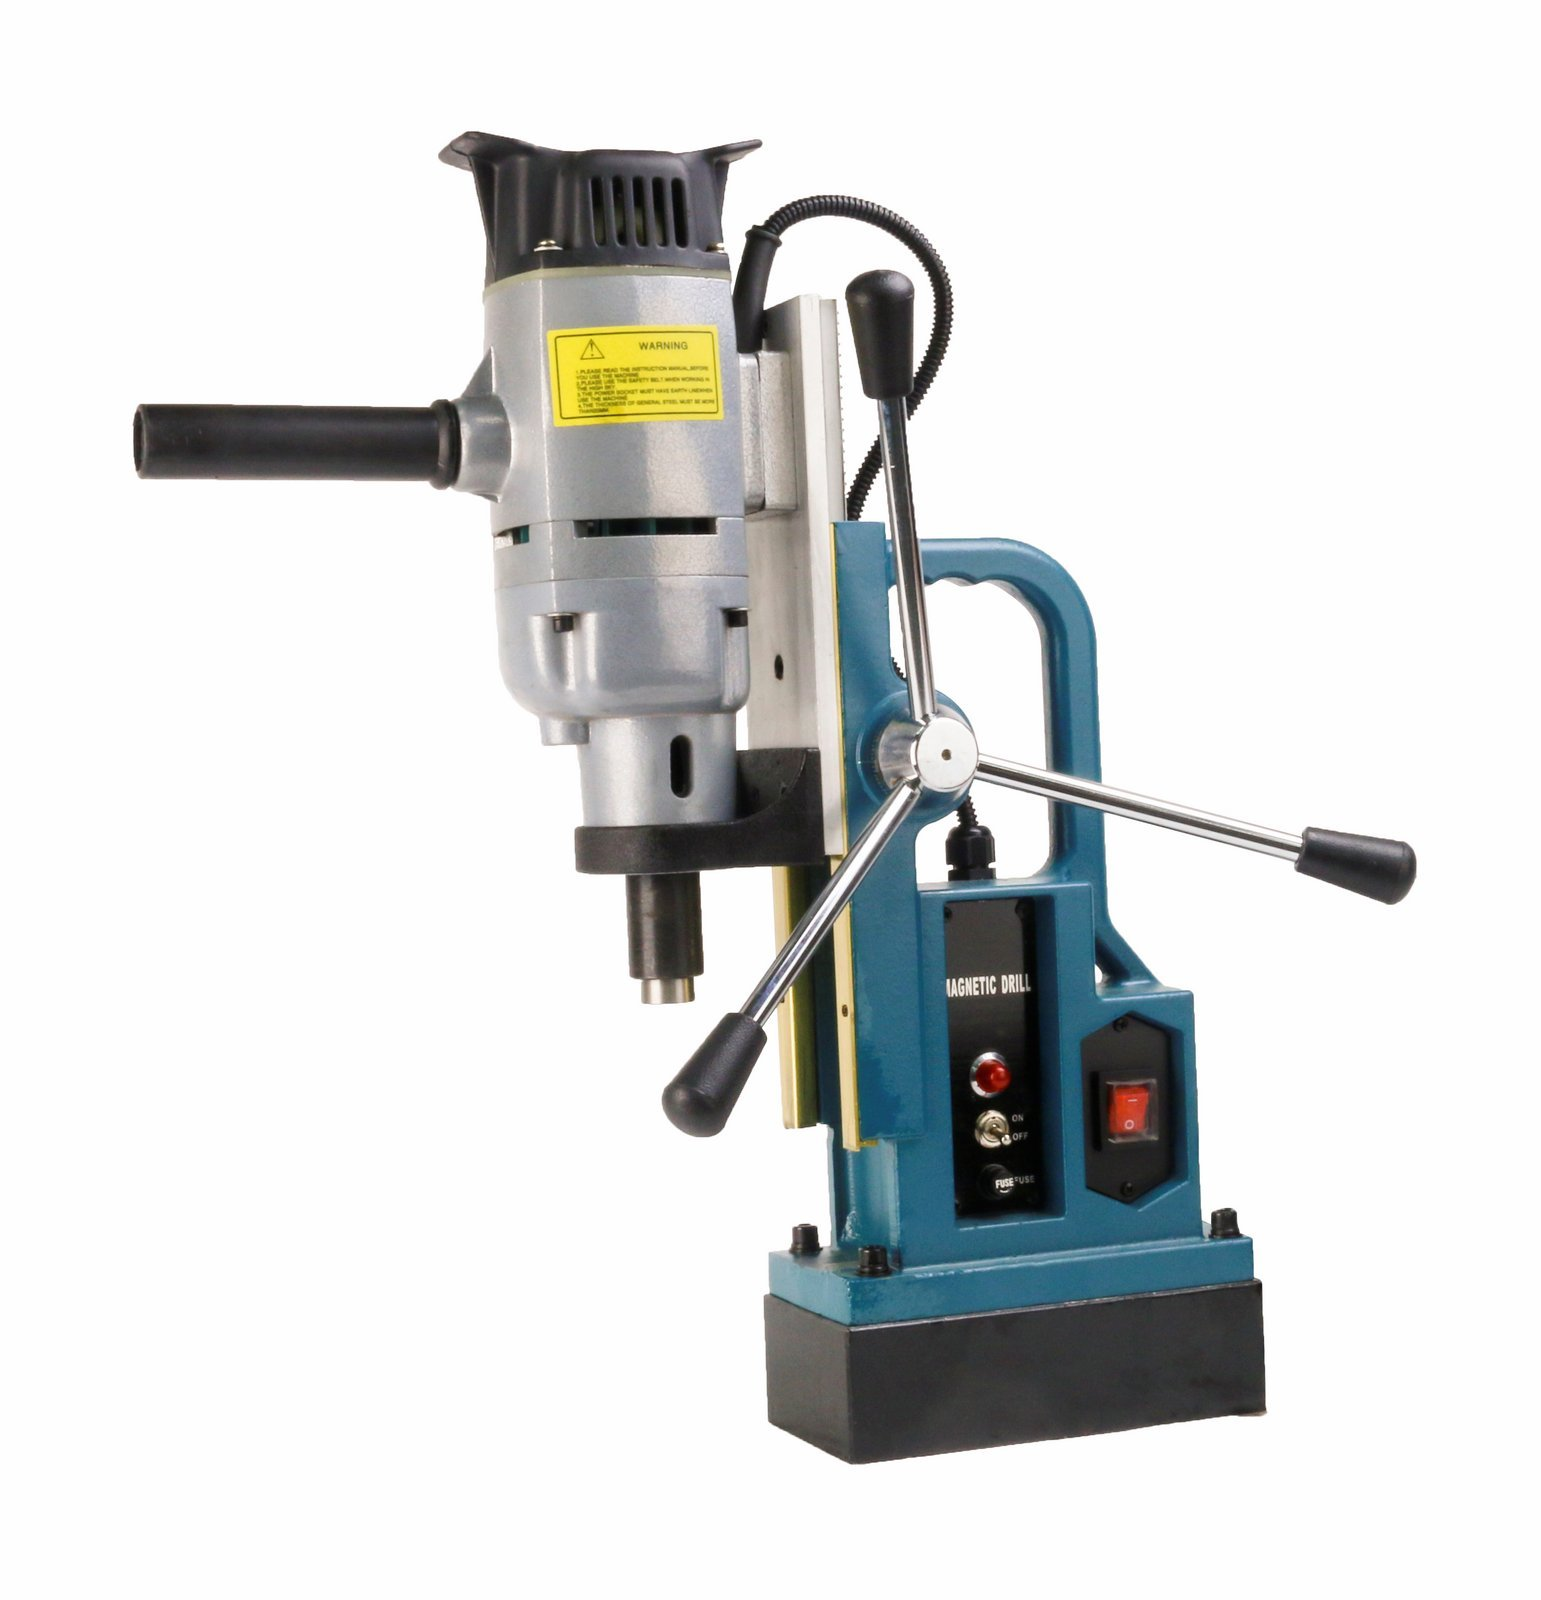 Steel Dragon Tools MD25 Magnetic Drill Press with 1'' Boring Diameter & 3372 lb Magnetic Force